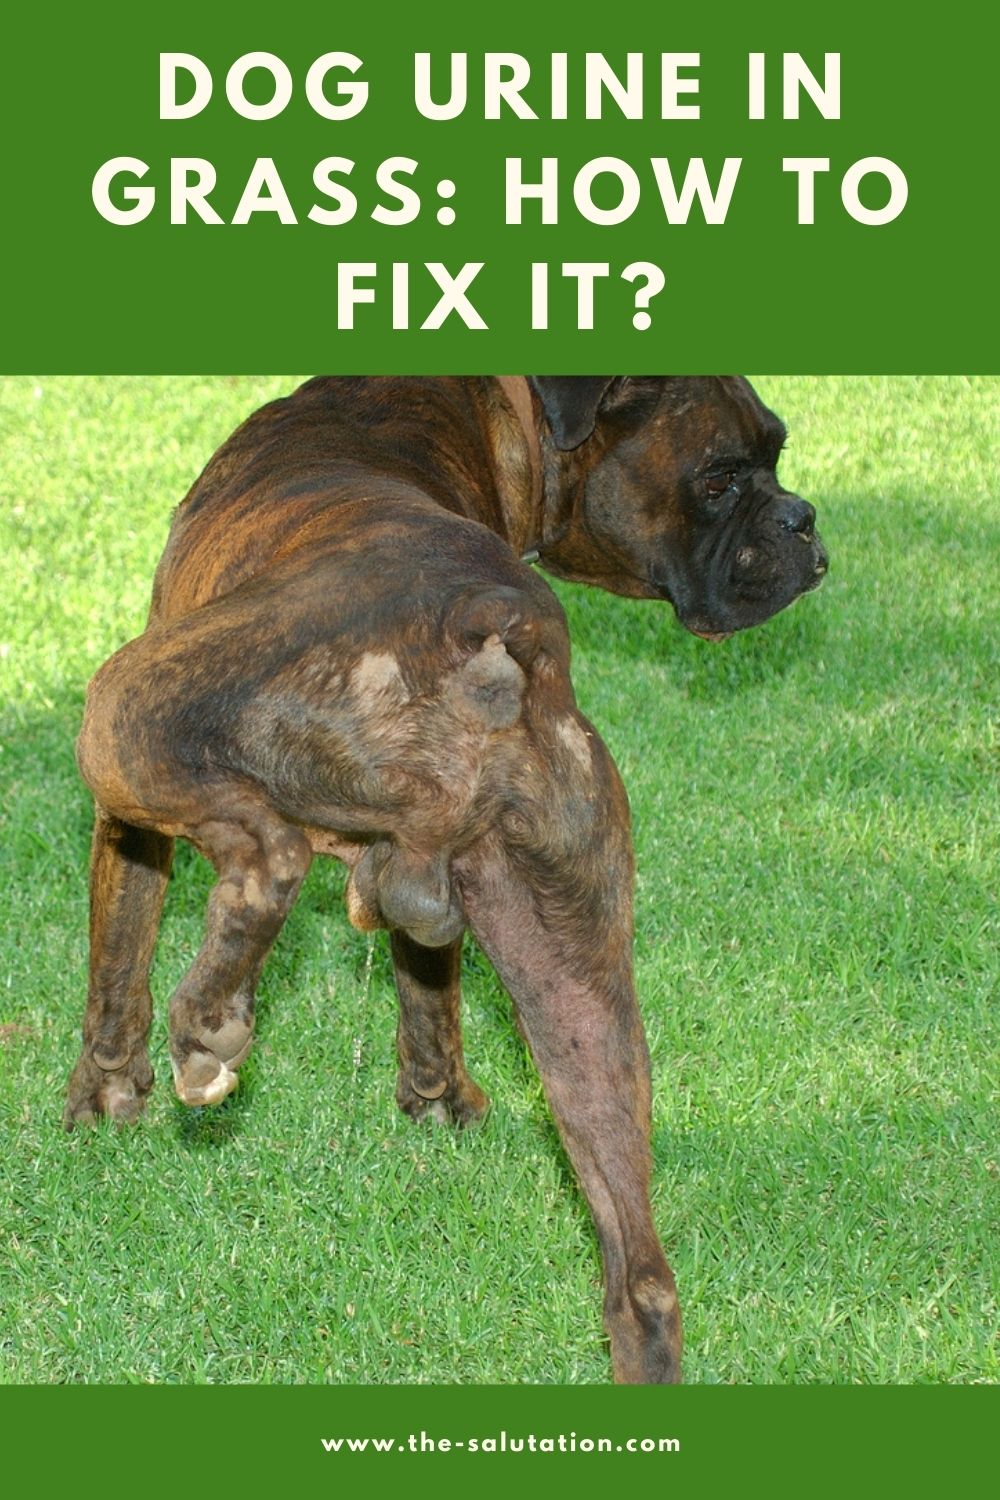 Dog Urine in Grass How to Fix it (8 Tips) 1